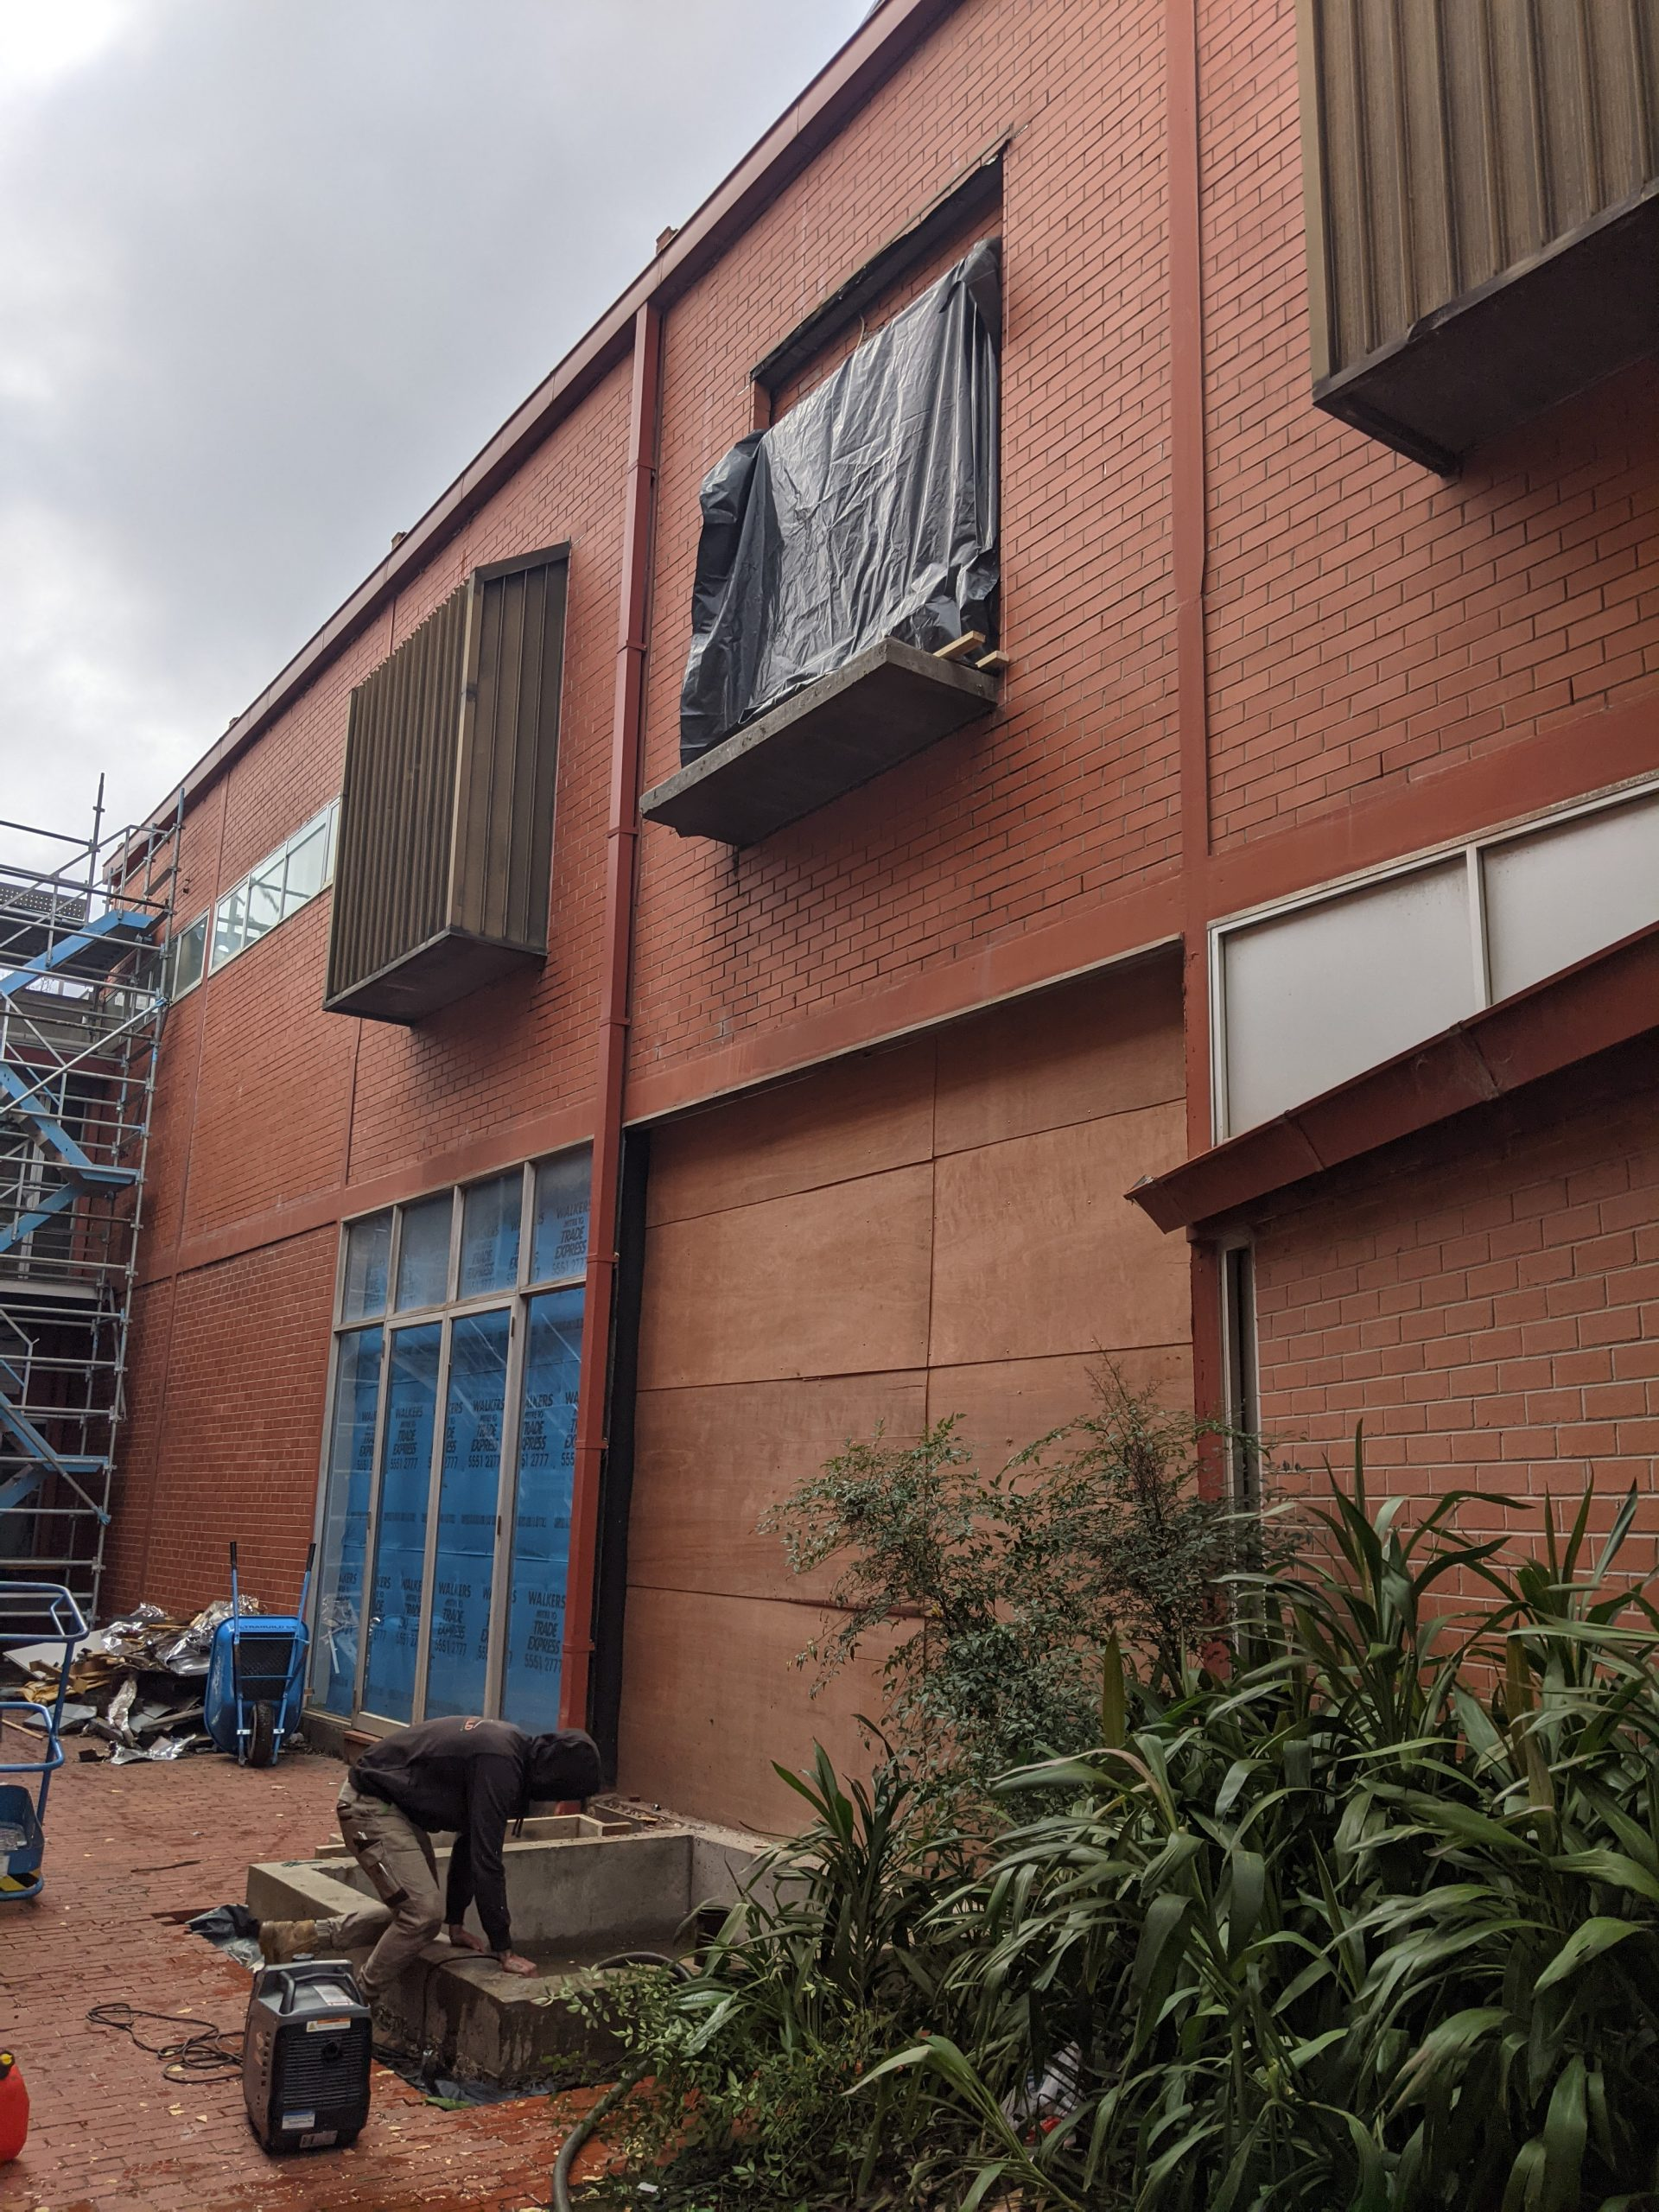 an external wall of a building with a space for an elevator entrance on the second floor